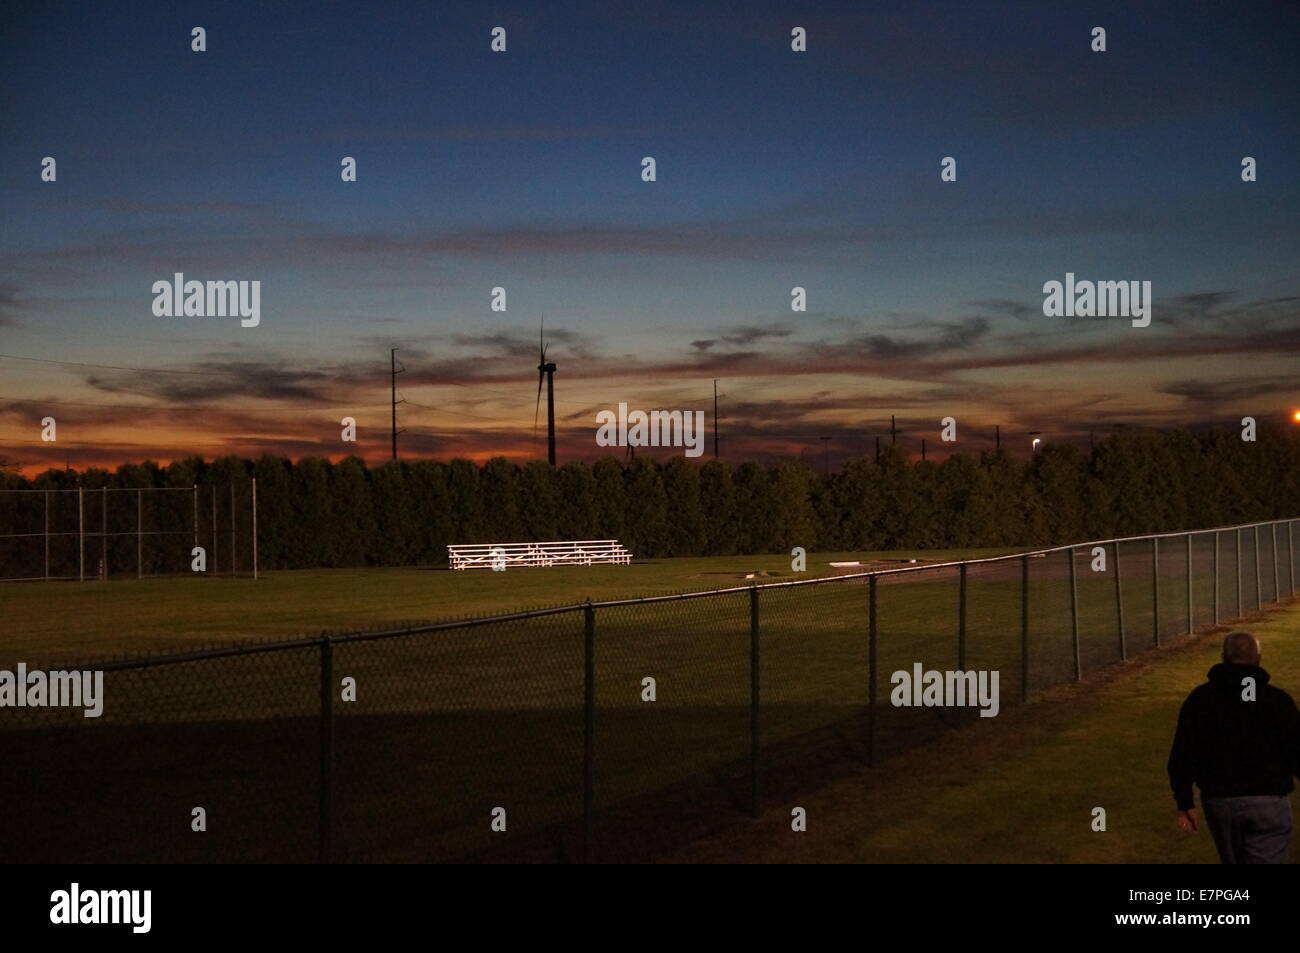 Behind the football game - Stock Image